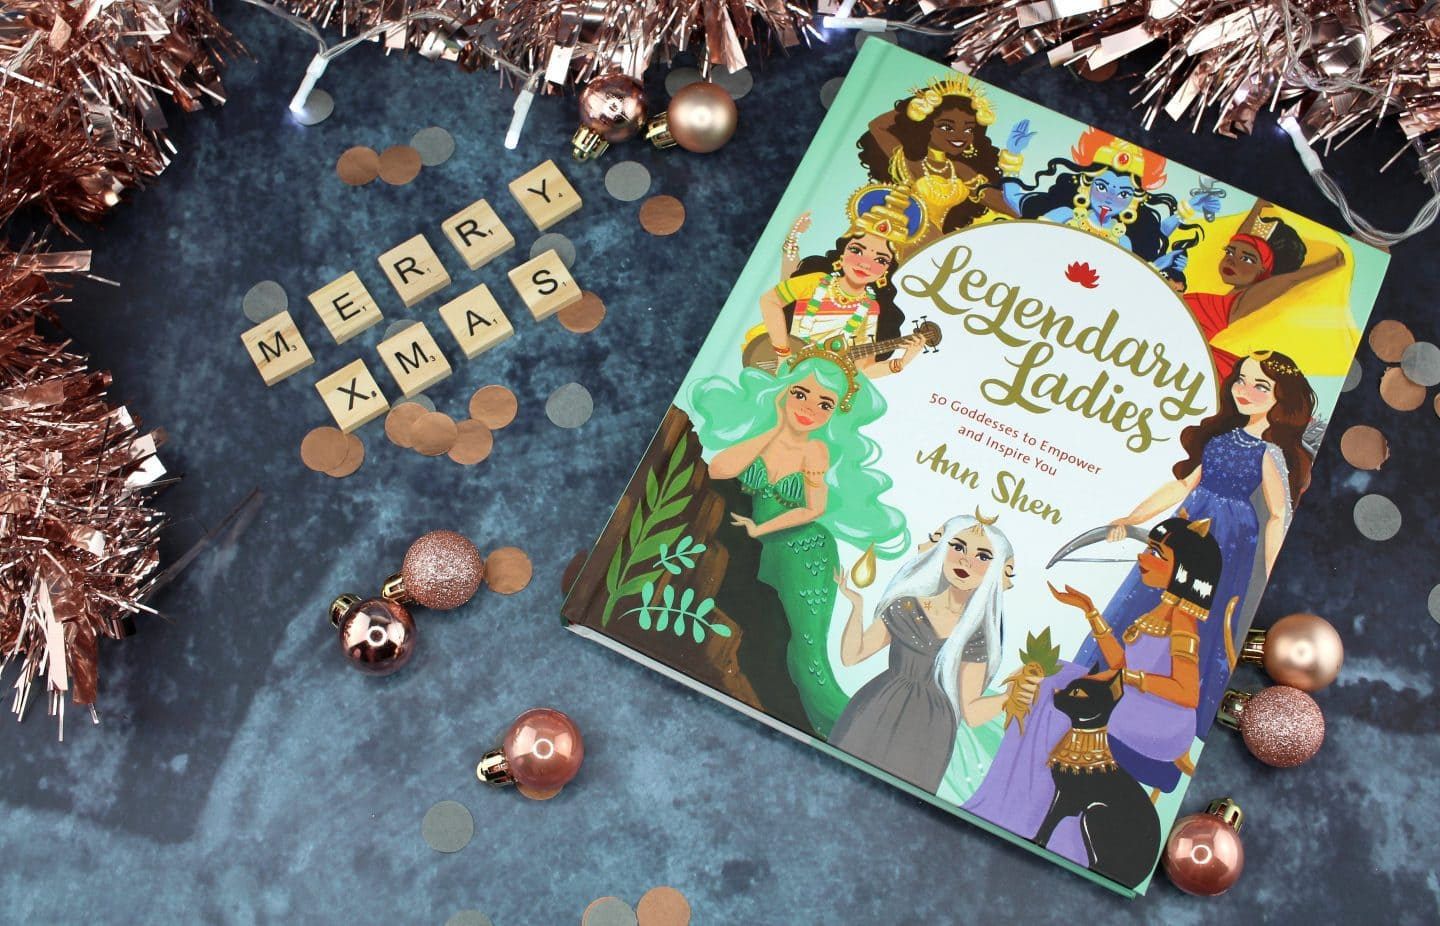 Legendary Ladies book